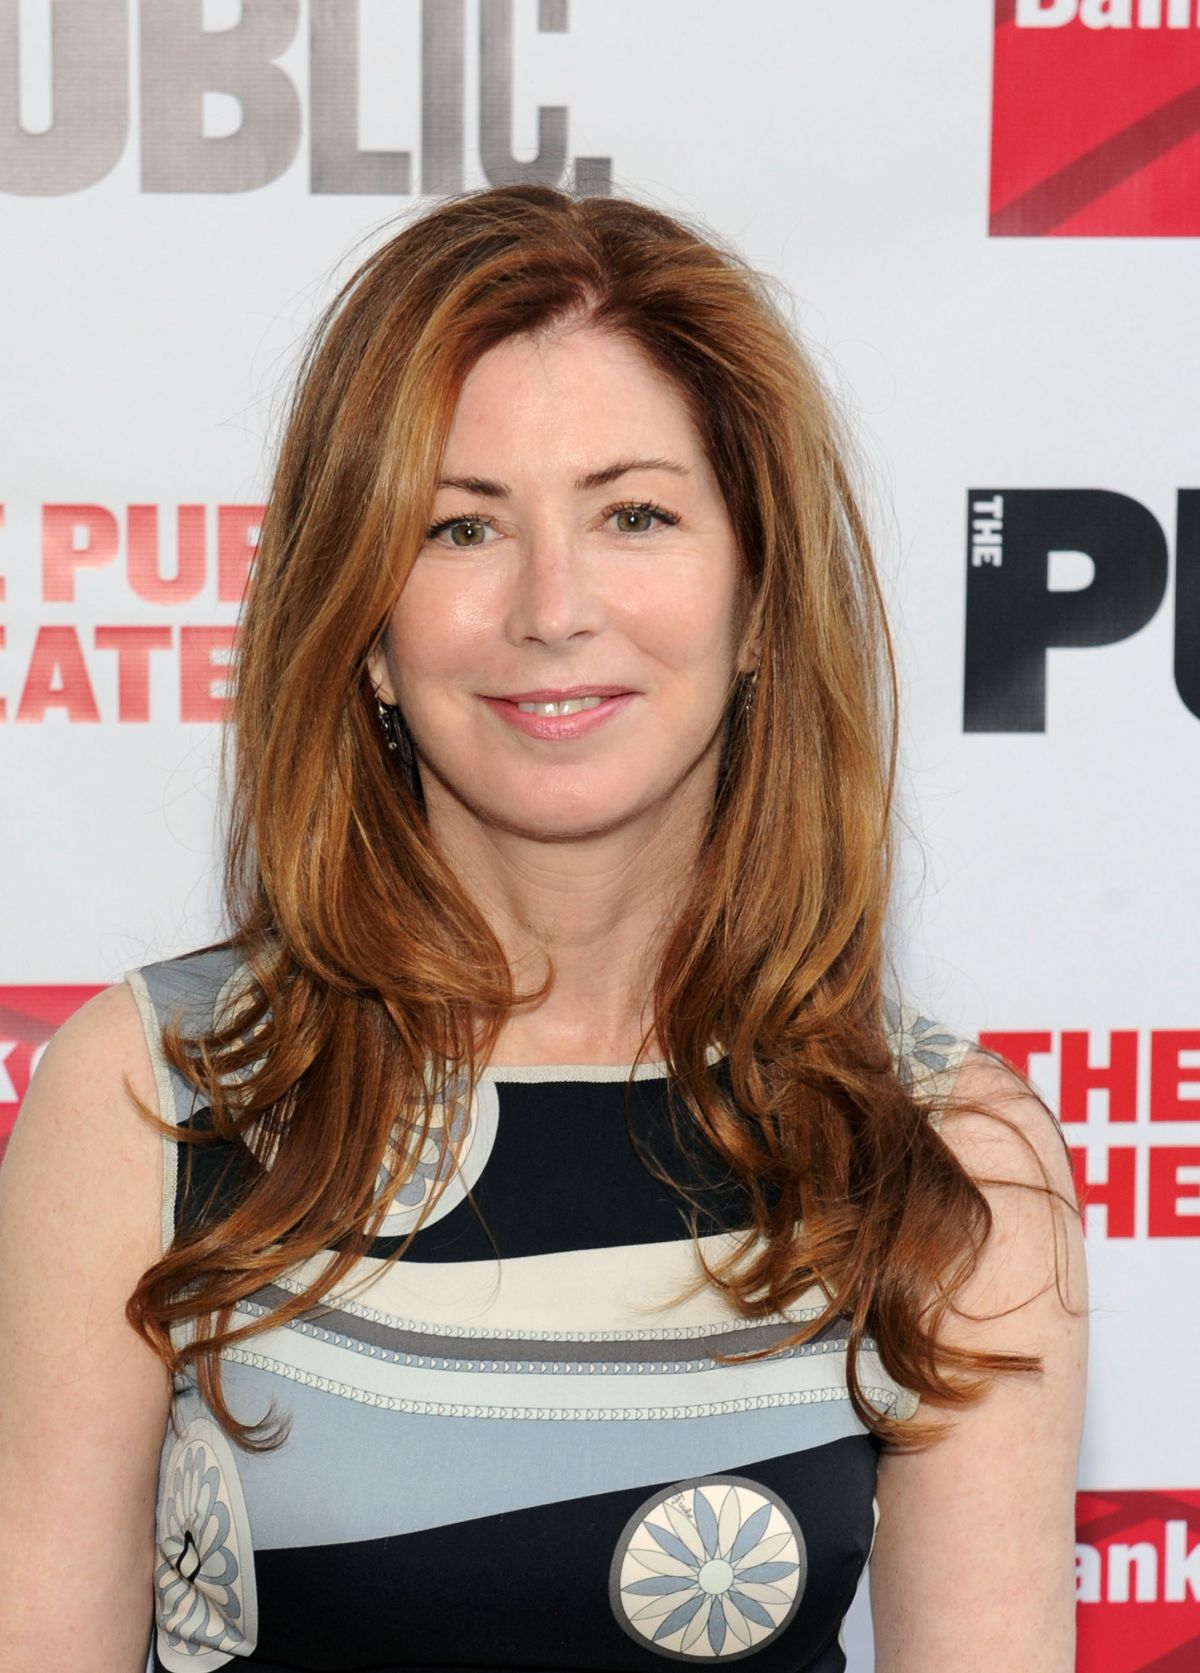 DANA DELANY at Much Ado About Nothing Opening Night in New York